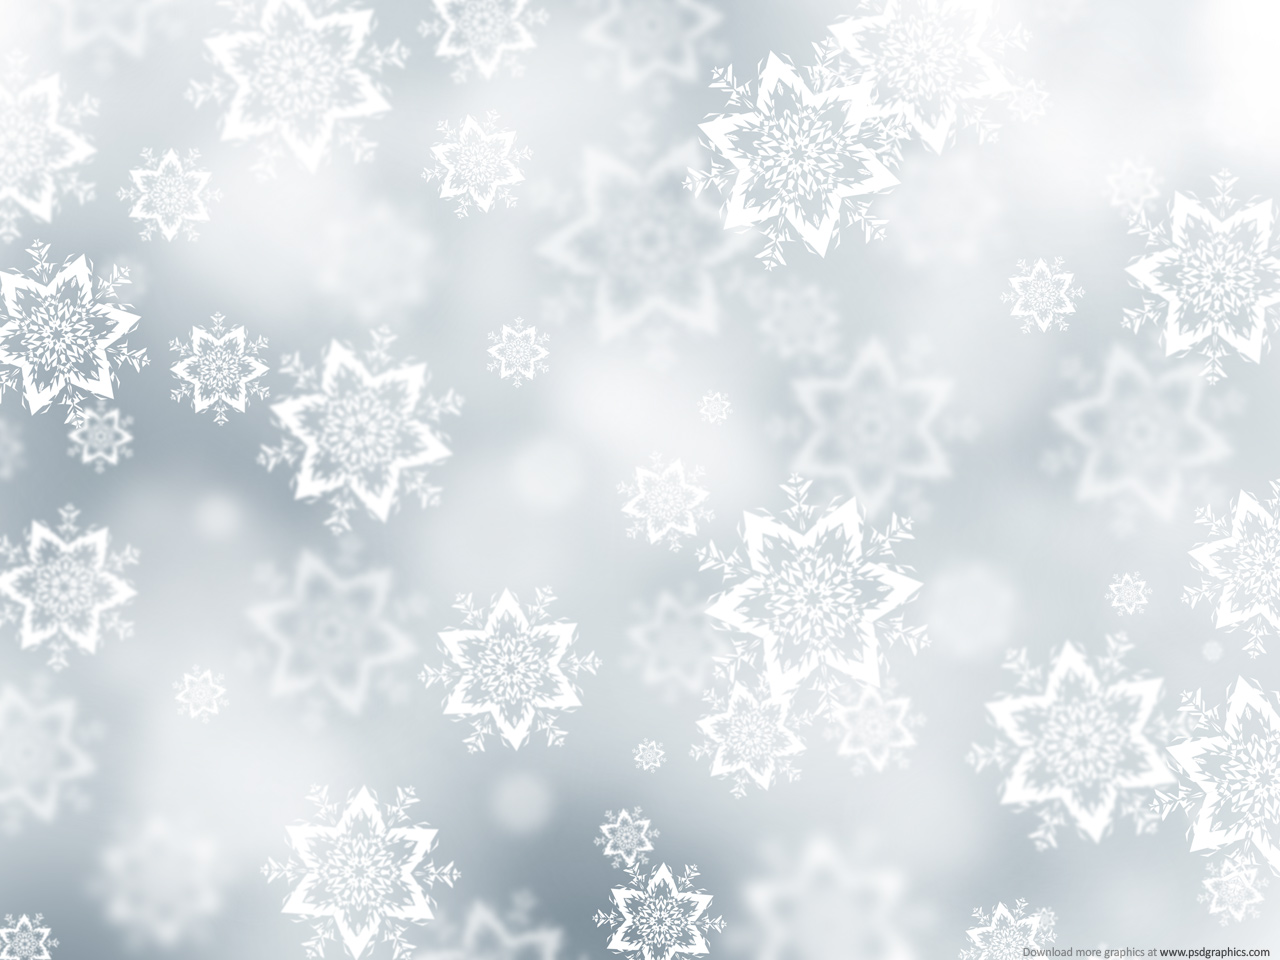 Snowy Christmas Backgrounds Png - Free Snowflake Background Cliparts, Download Free Clip Art, Free ...